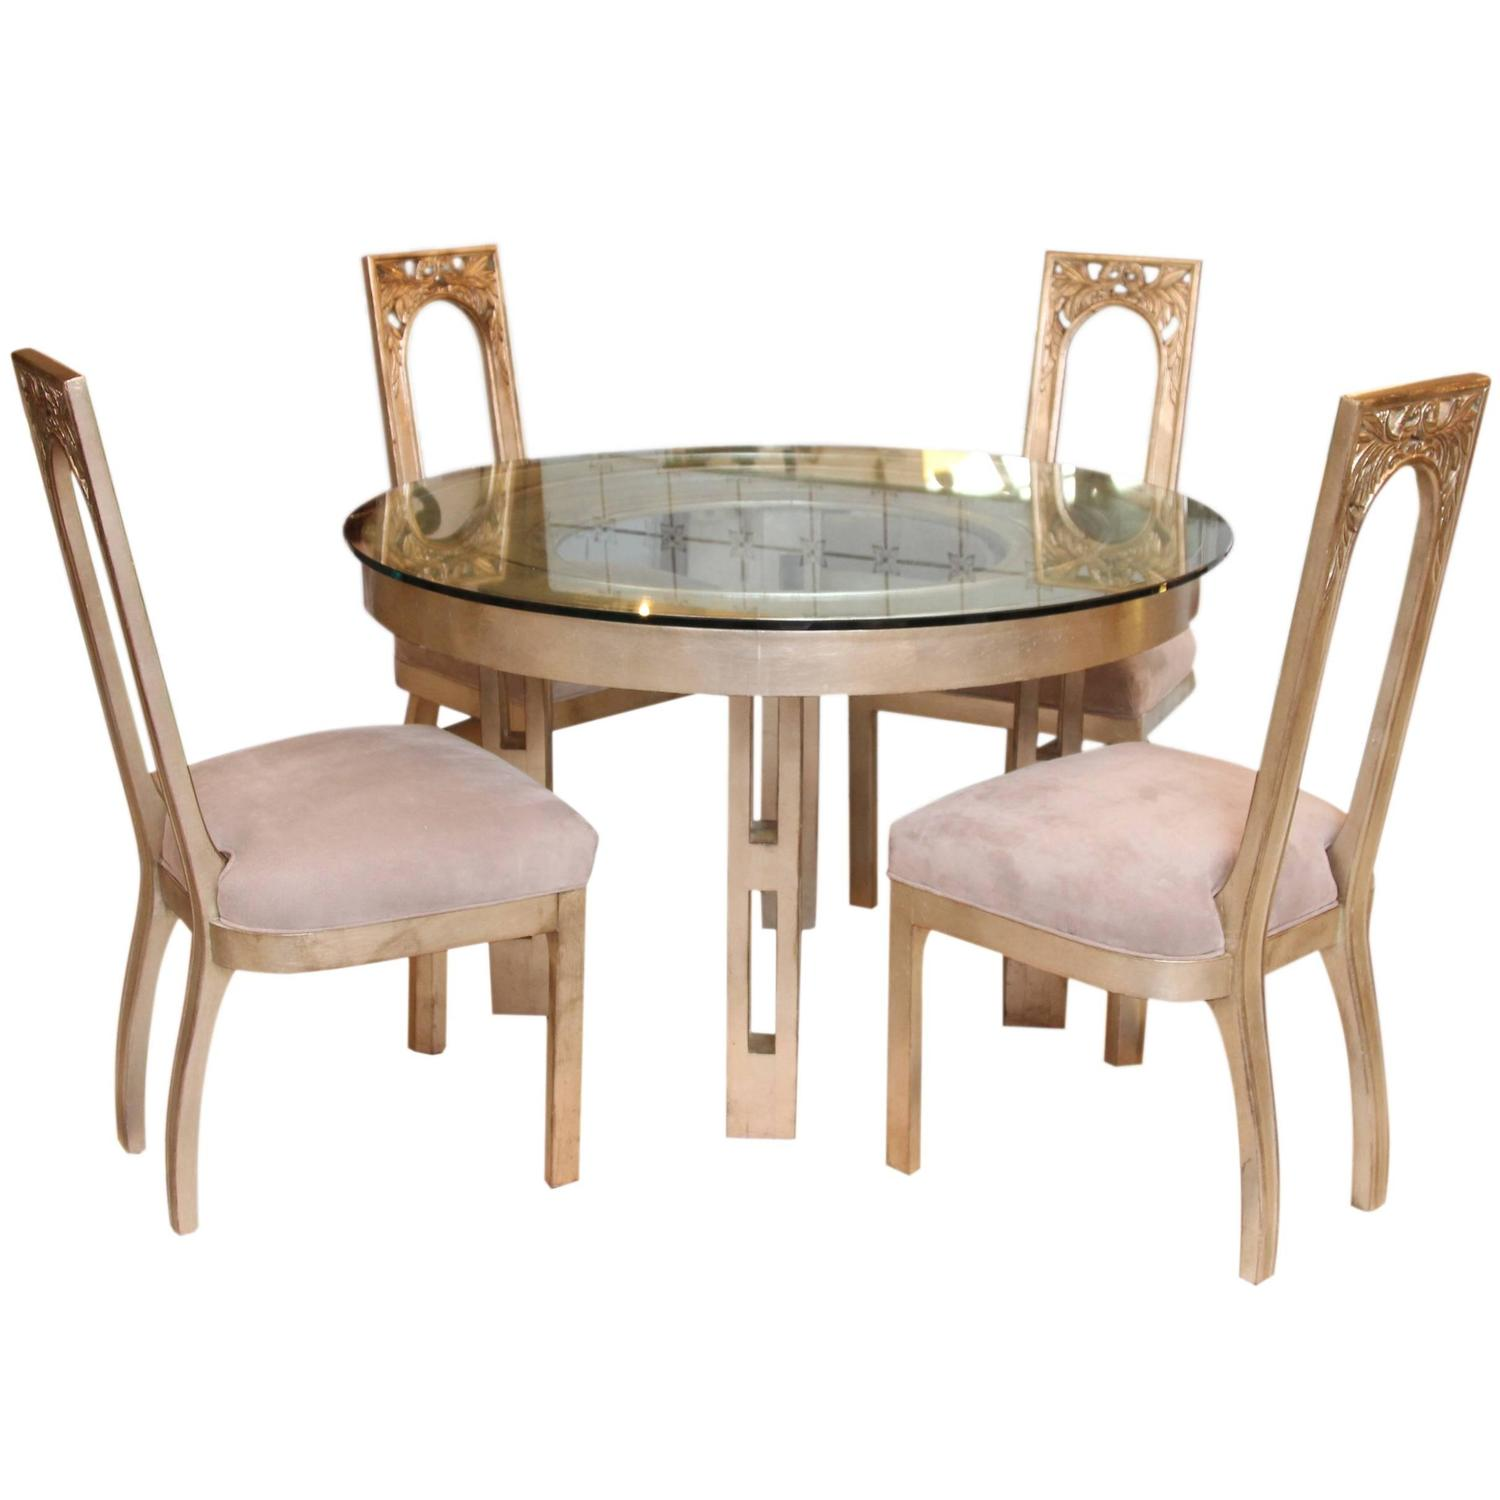 1960s Glazed Silver Leaf Round Dining Table And Four Chair Set By